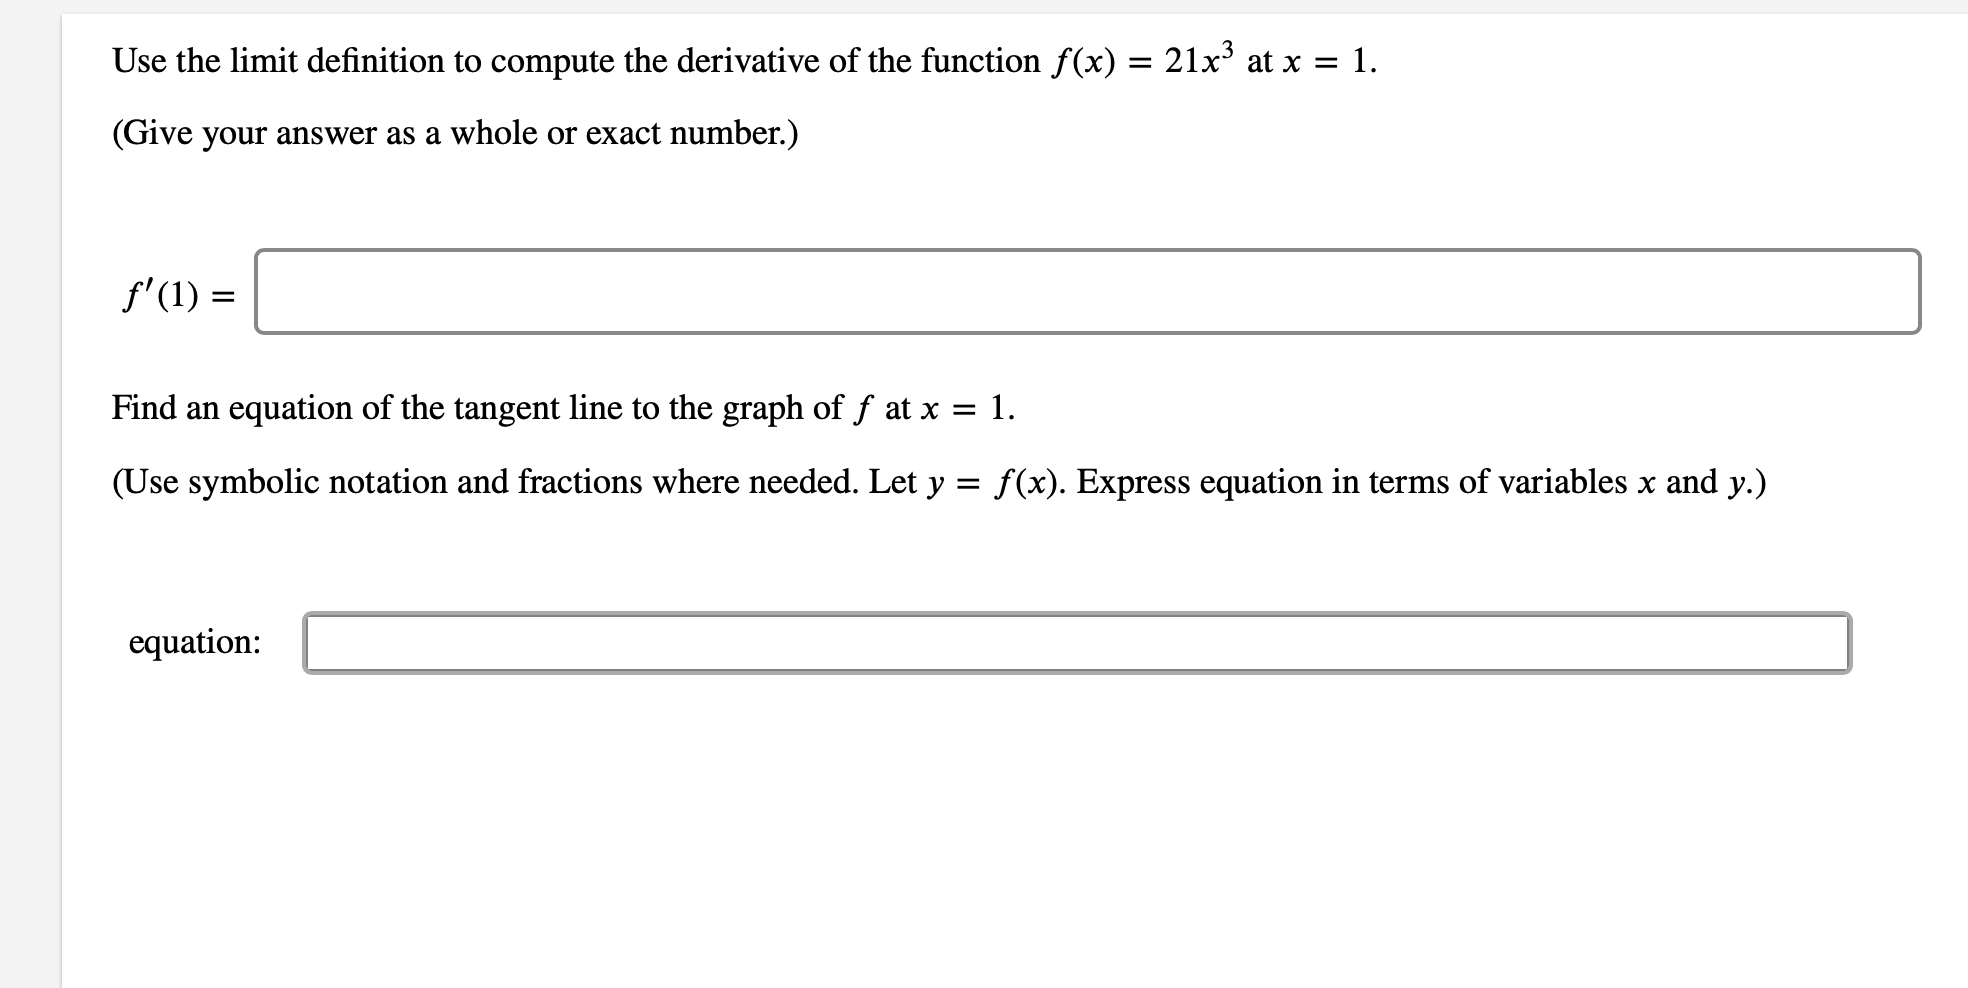 Use the limit definition to compute the derivative of the function f(x) = 21x3 at x = 1. (Give your answer as a whole or exact number.) f'(1) Find an equation of the tangent line to the graph of f at x = 1. (Use symbolic notation and fractions where needed. Let y = f(x). Express equation in terms of variables x and y.) equation